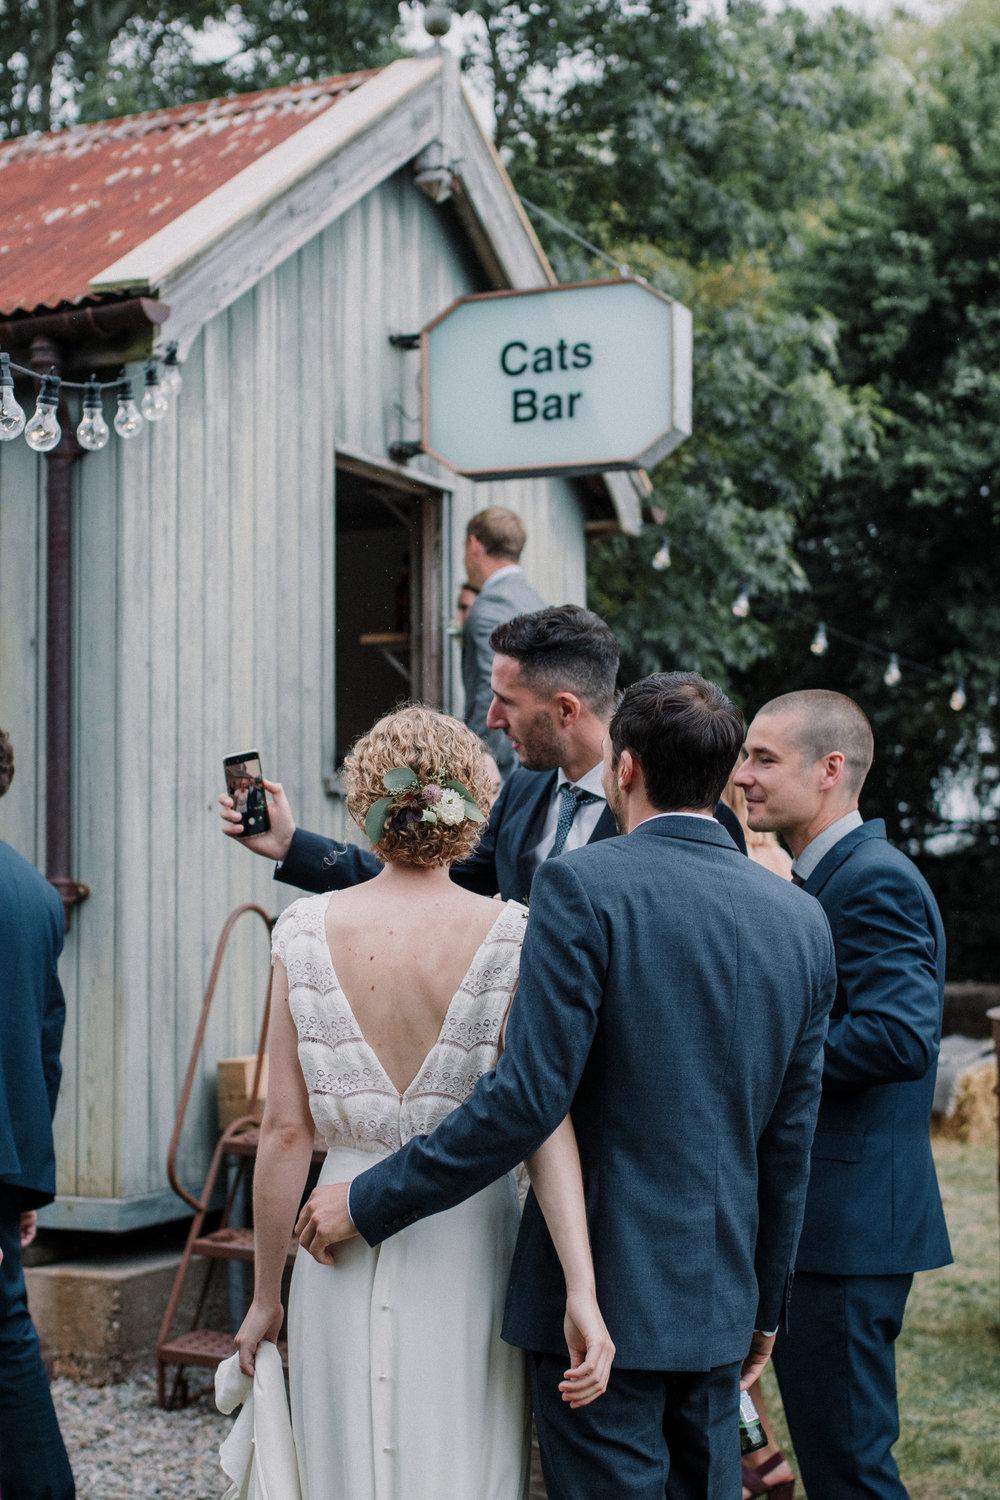 Cathryn & Ben Bailey - Wedding Photography by Carolyn Carter